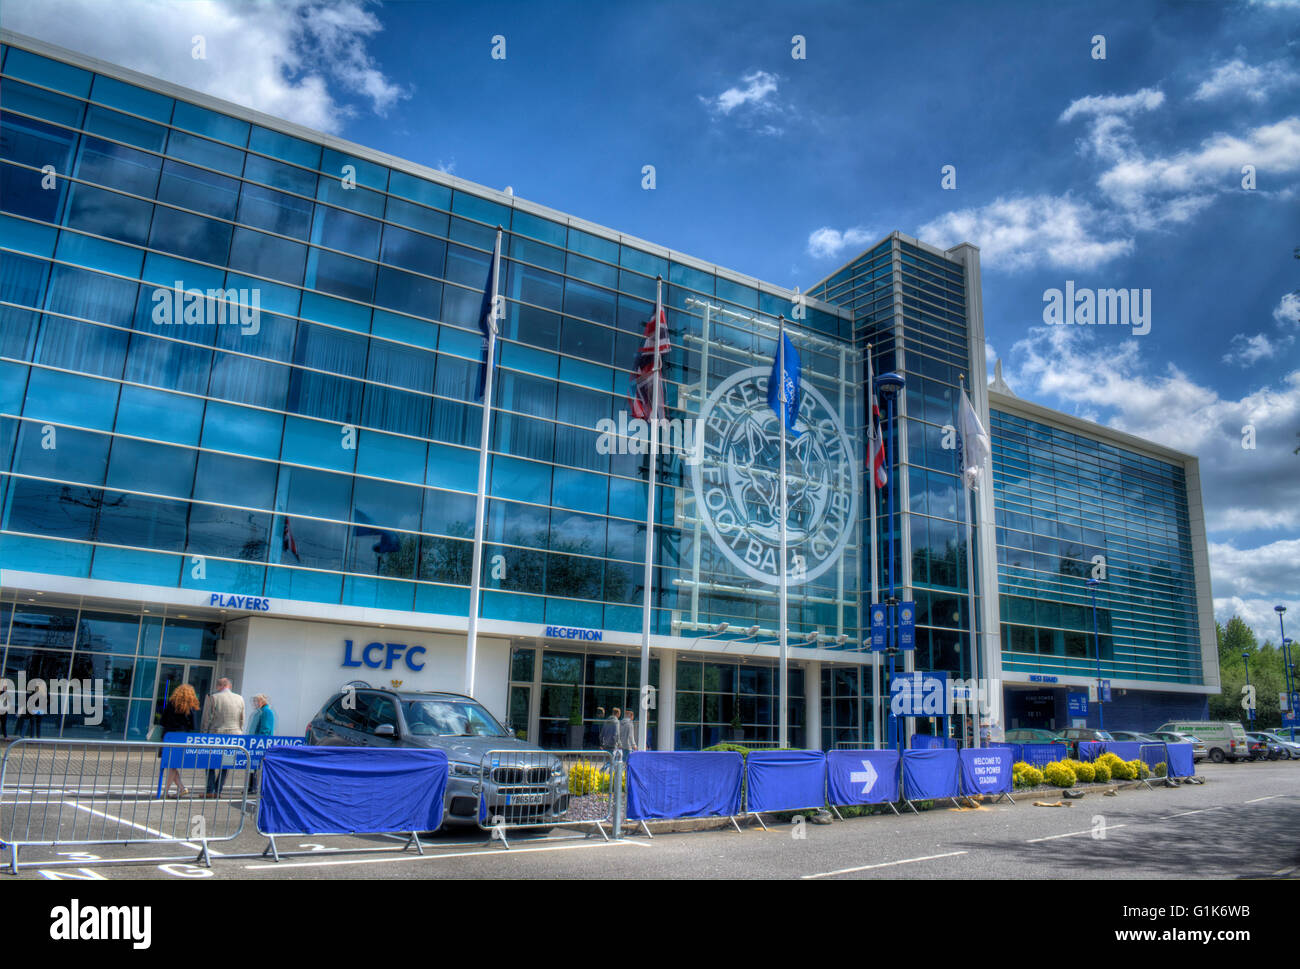 Image of the King Power Stadium home of the 2015/2016 Premier League Champions - Stock Image